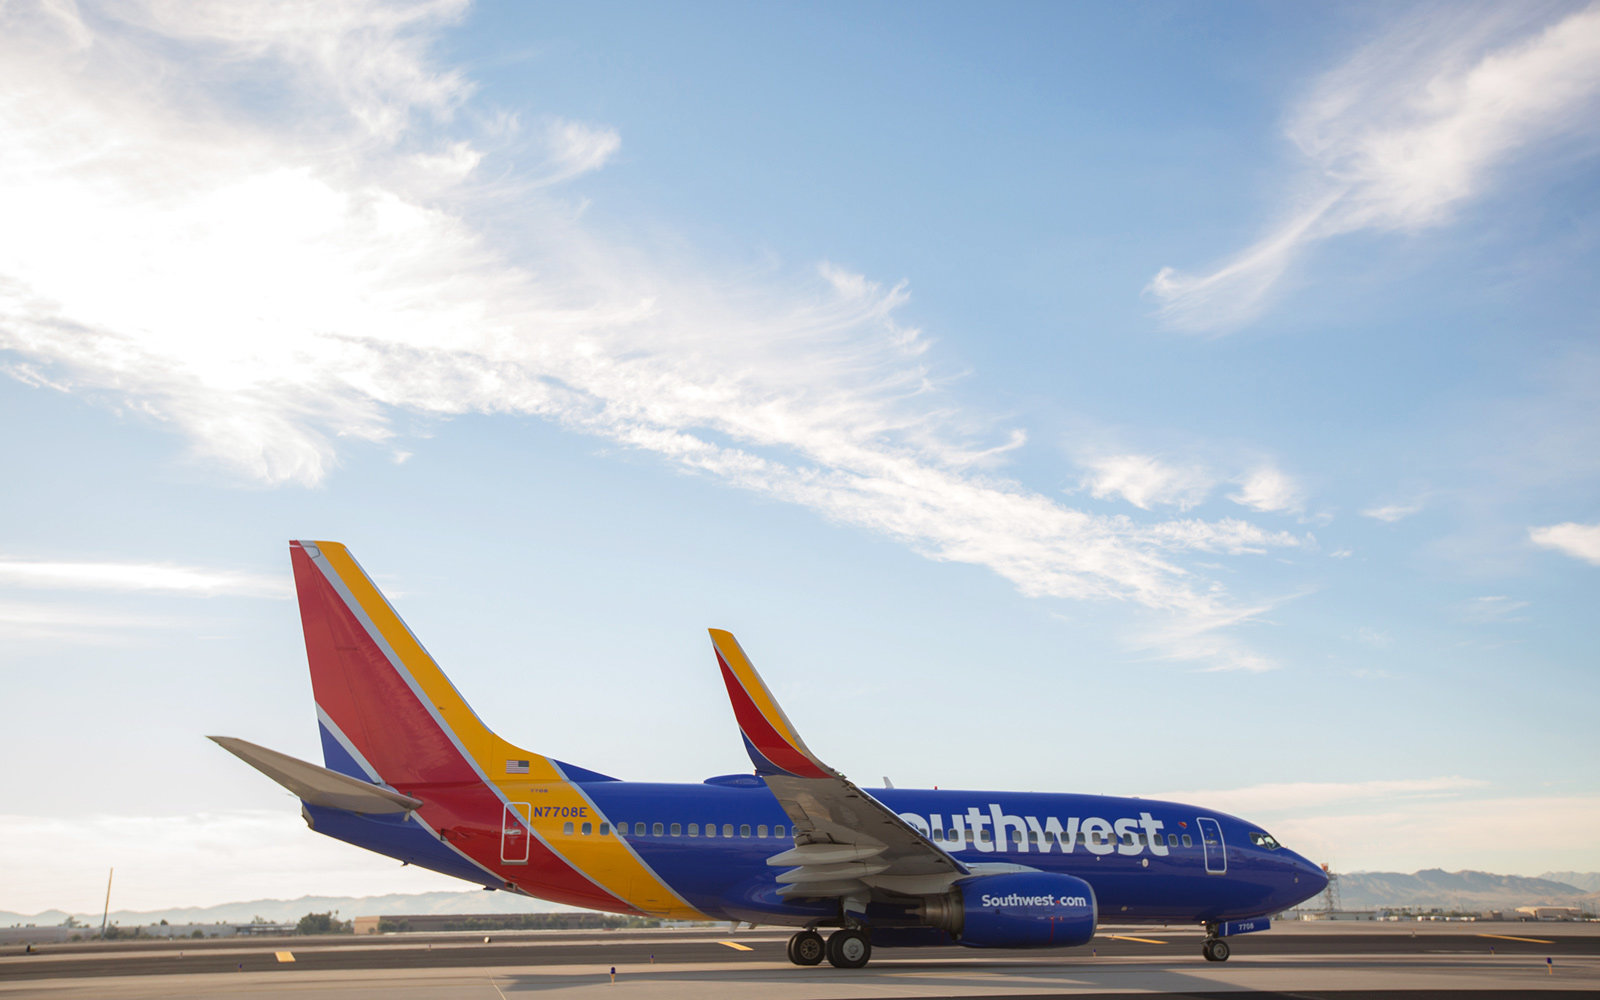 Boeing 737, Southwest Airlines